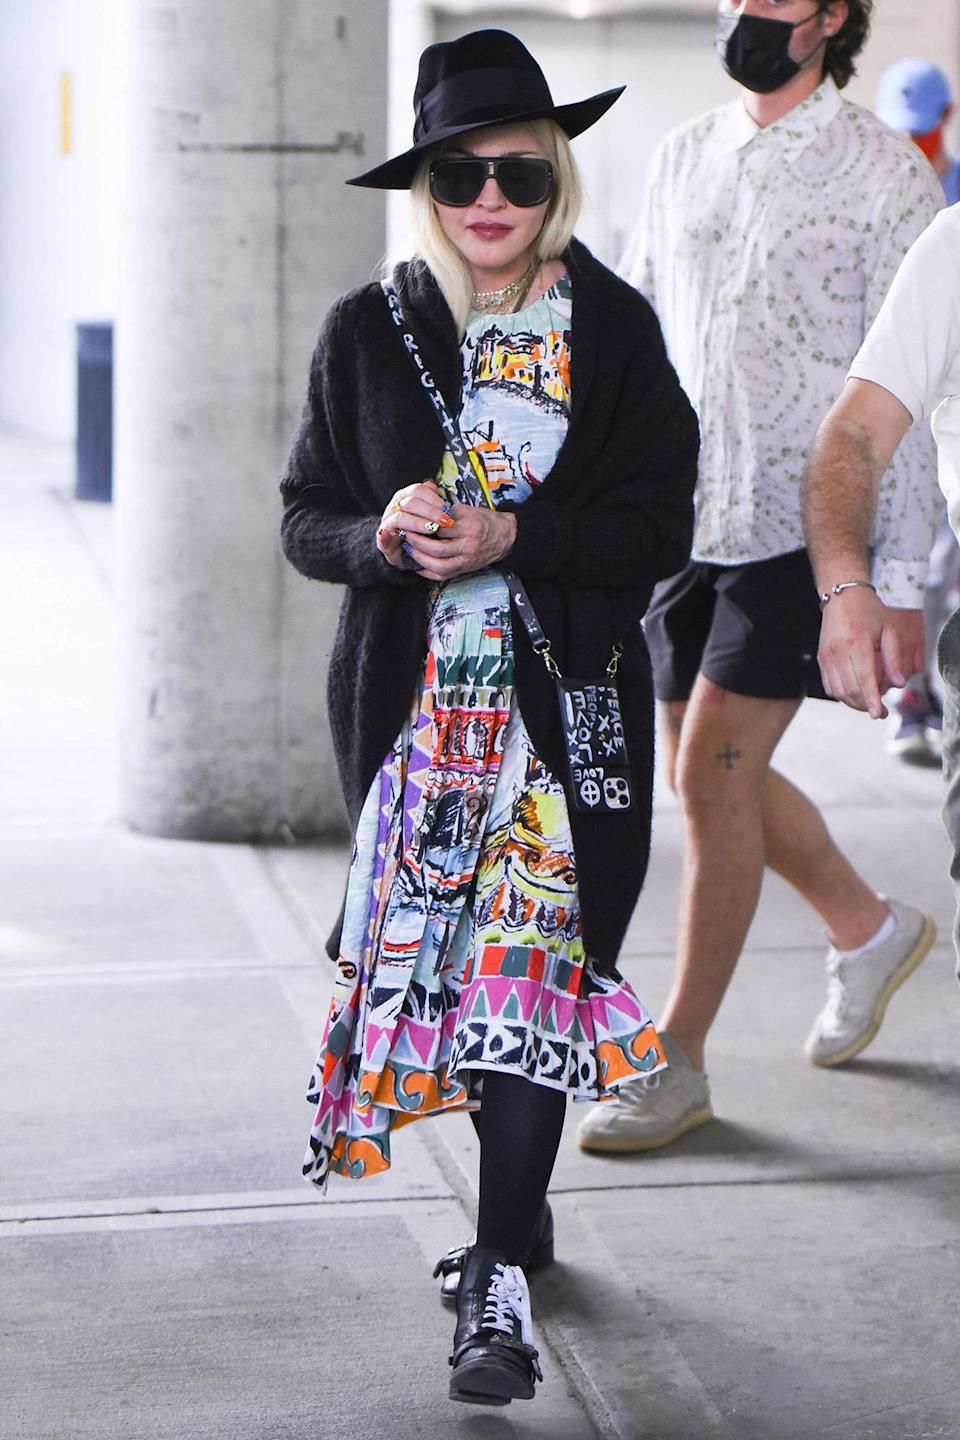 <p>Madonna arrives at JFK Airport in N.Y.C. wearing a colorful dress paired with a black fedora on June 7.</p>